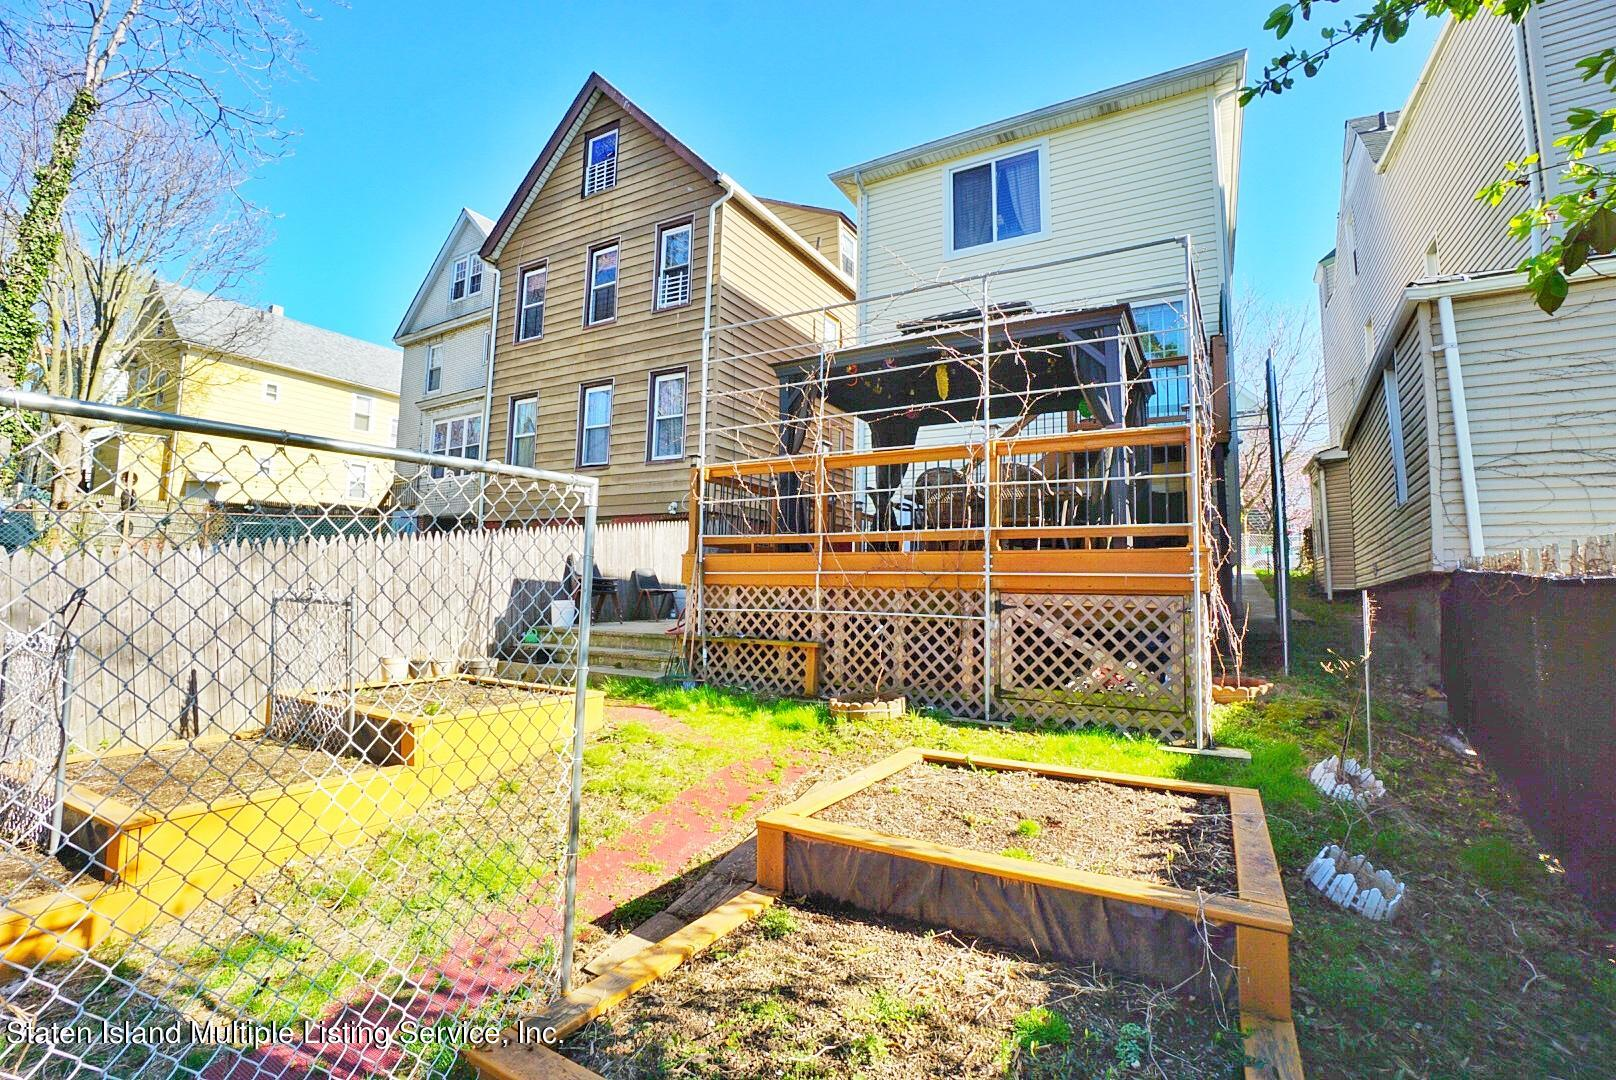 Single Family - Detached 171 Benziger Avenue  Staten Island, NY 10301, MLS-1145235-46